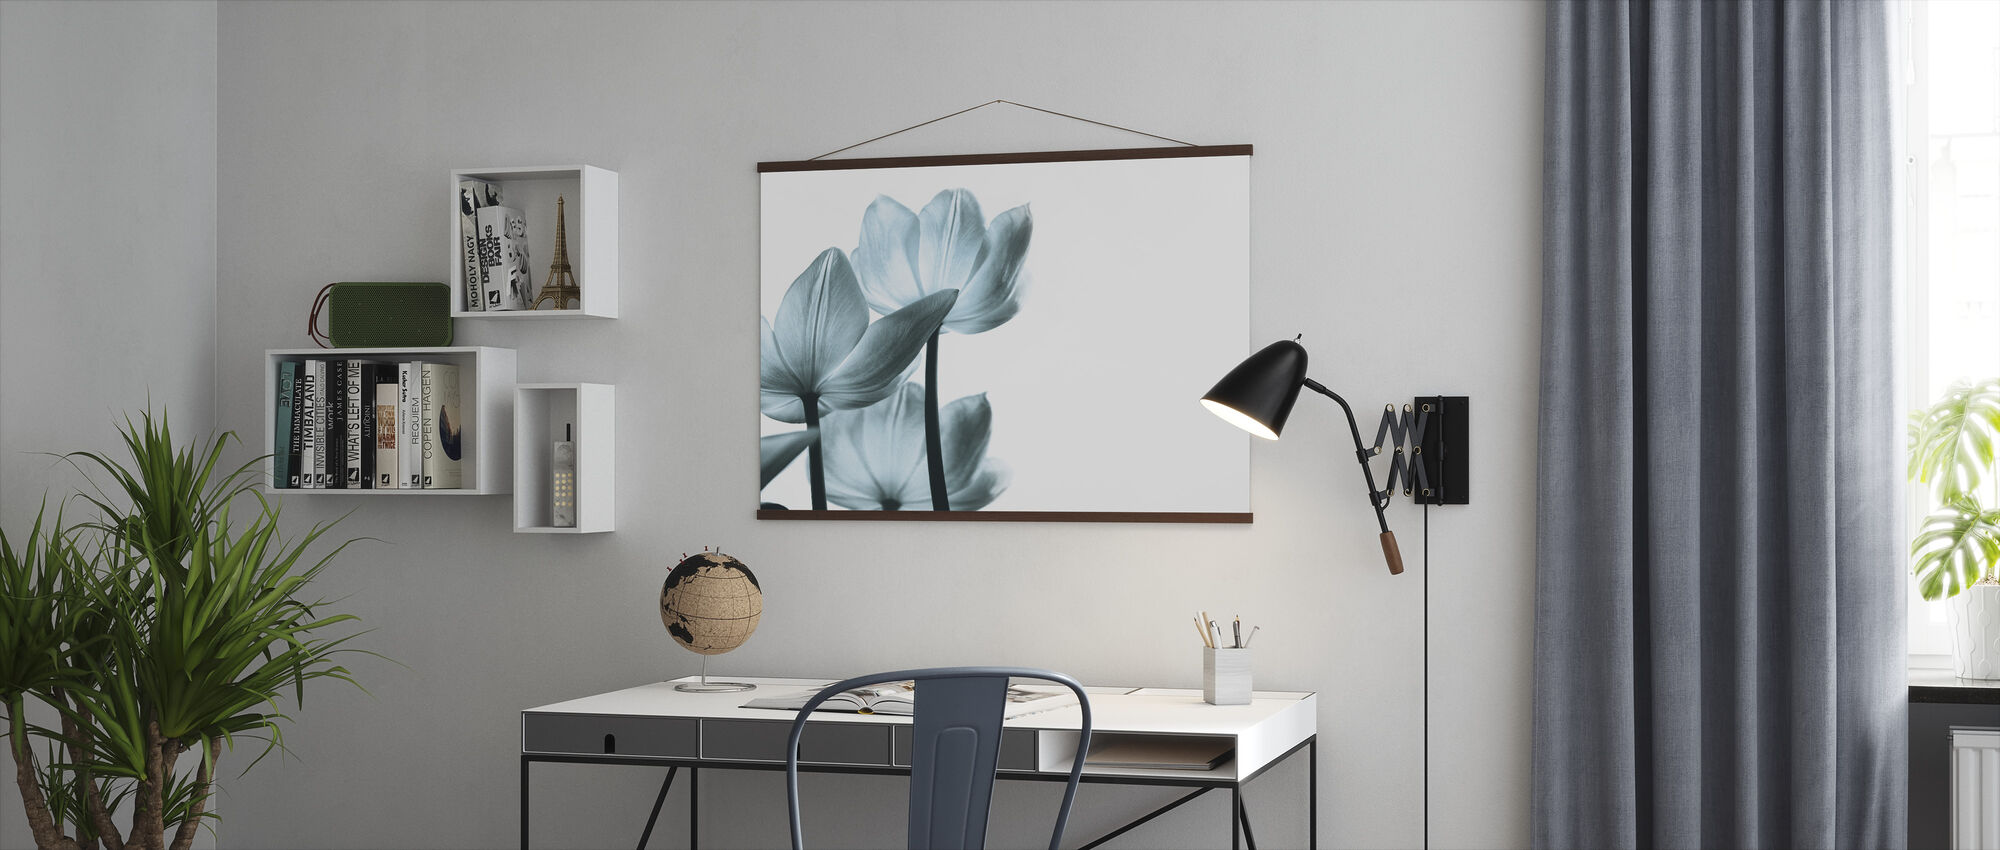 Translucent Tulips - Poster - Office